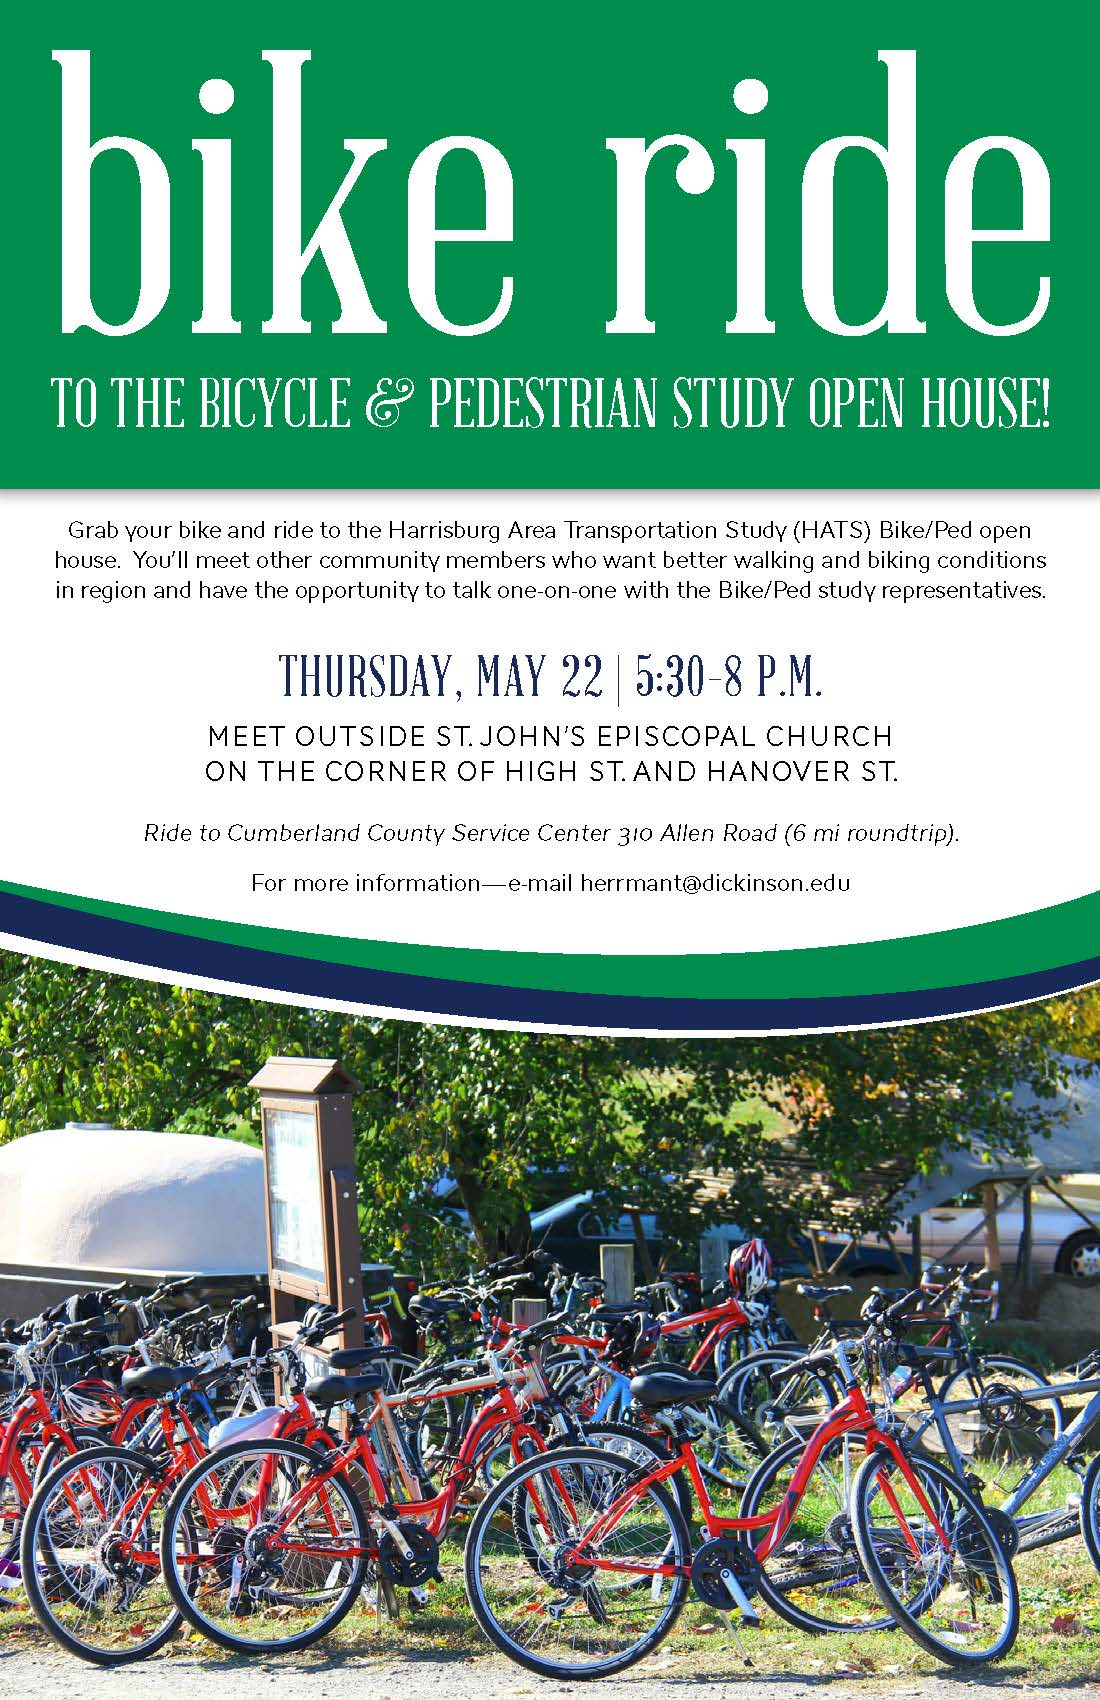 Bike ride for Tri-County Bike/Ped Plan open house